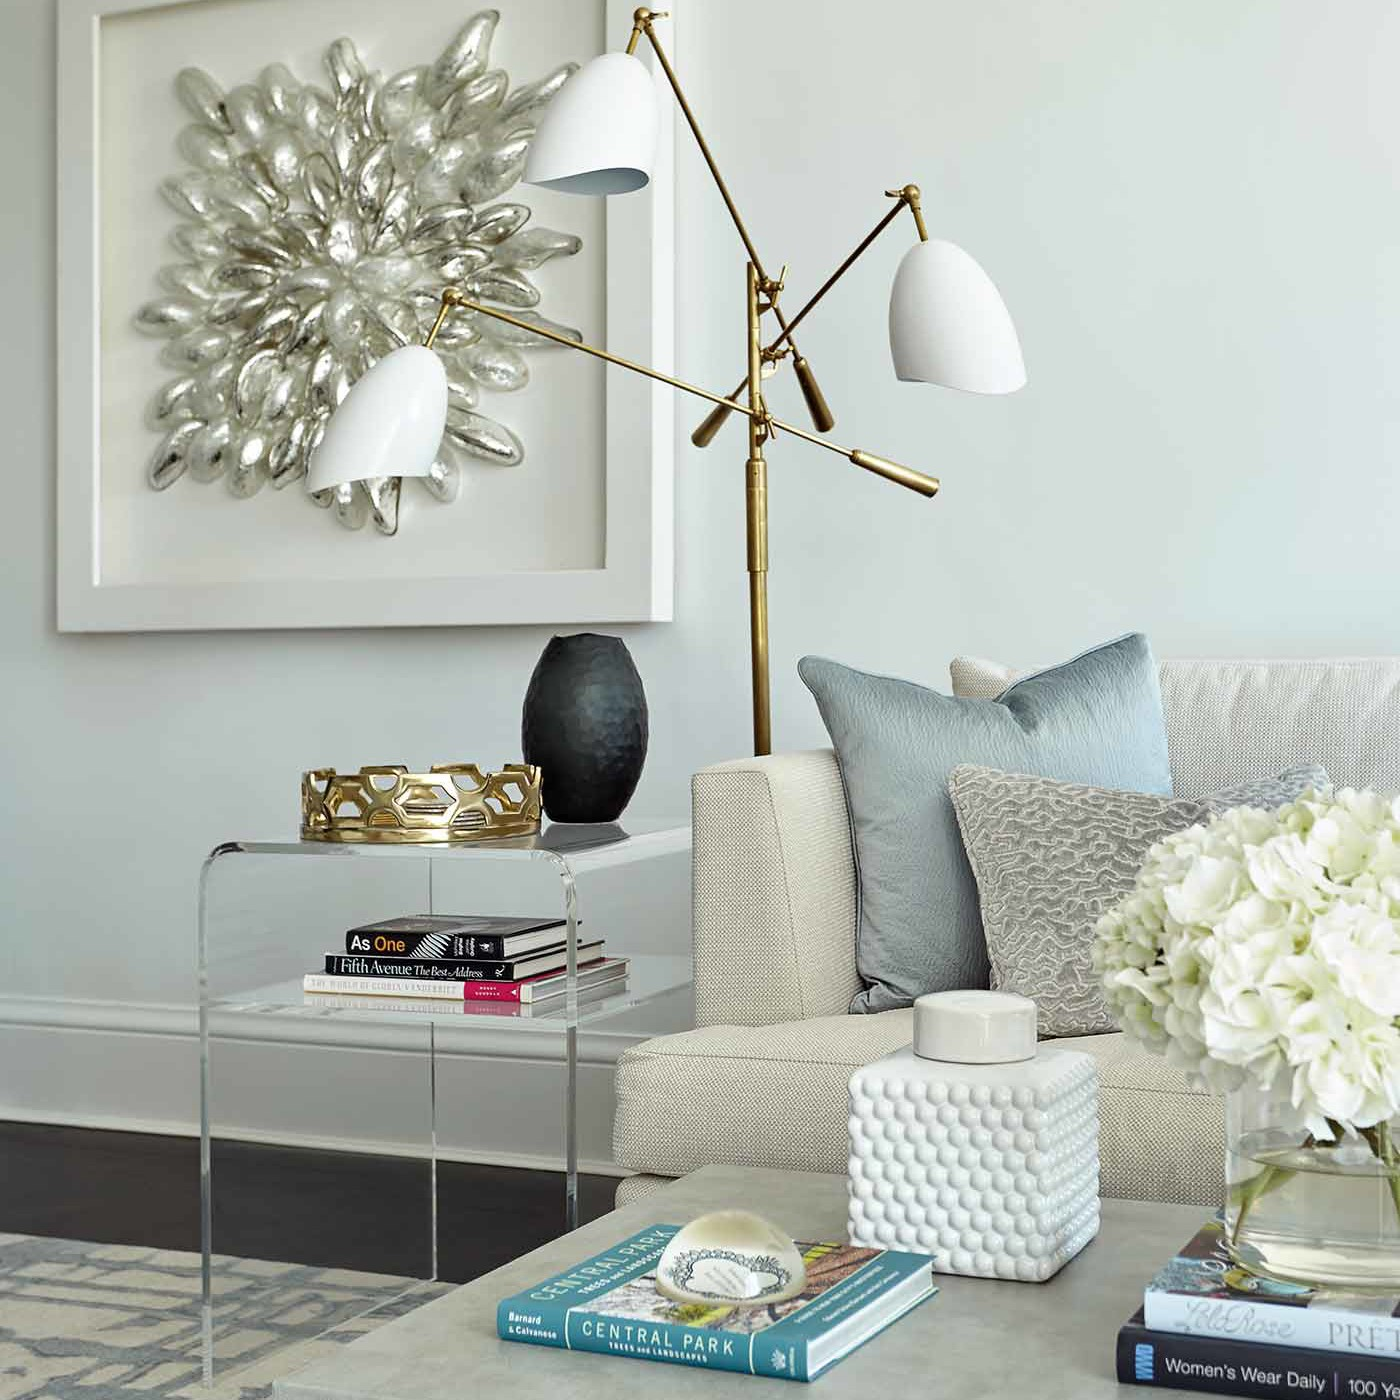 Living room interior design with fun accessories, lighting and accent furnishings by Darci Hether New York